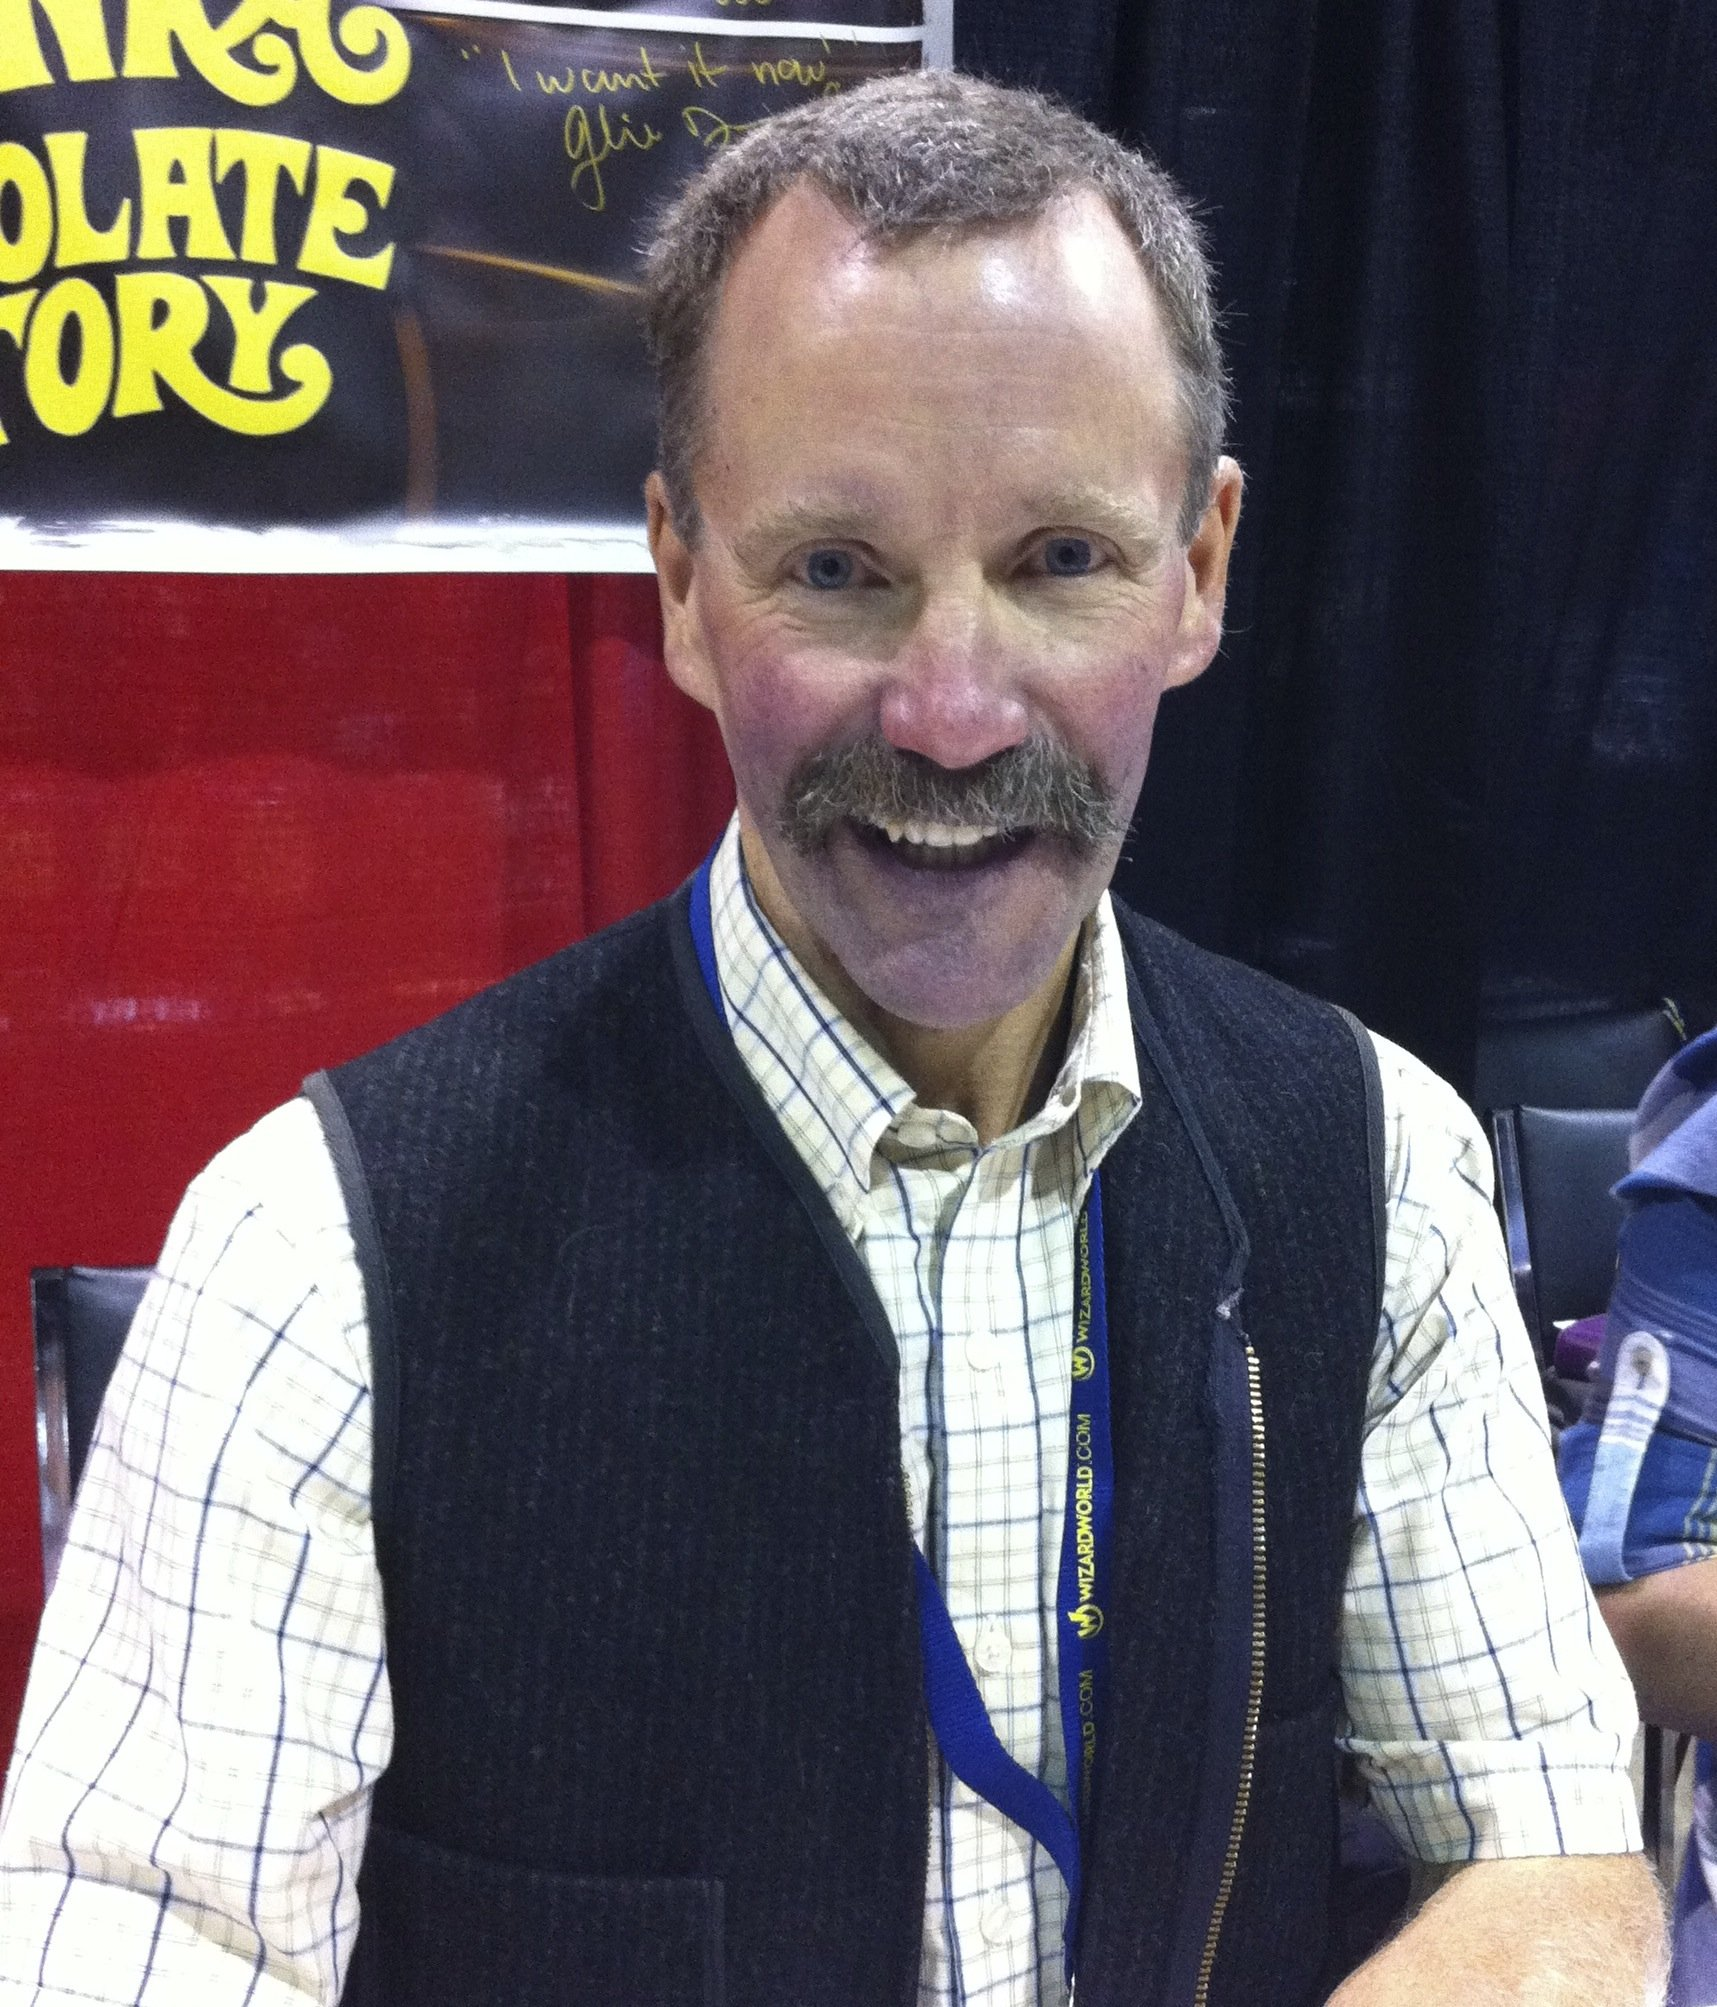 Peter Ostrum at the 2011 Wizard World Chicago event; the child cast of Willy Wonka & the Chocolate Factory were promoting that film's 40th anniversary.| Wikimedia Commons